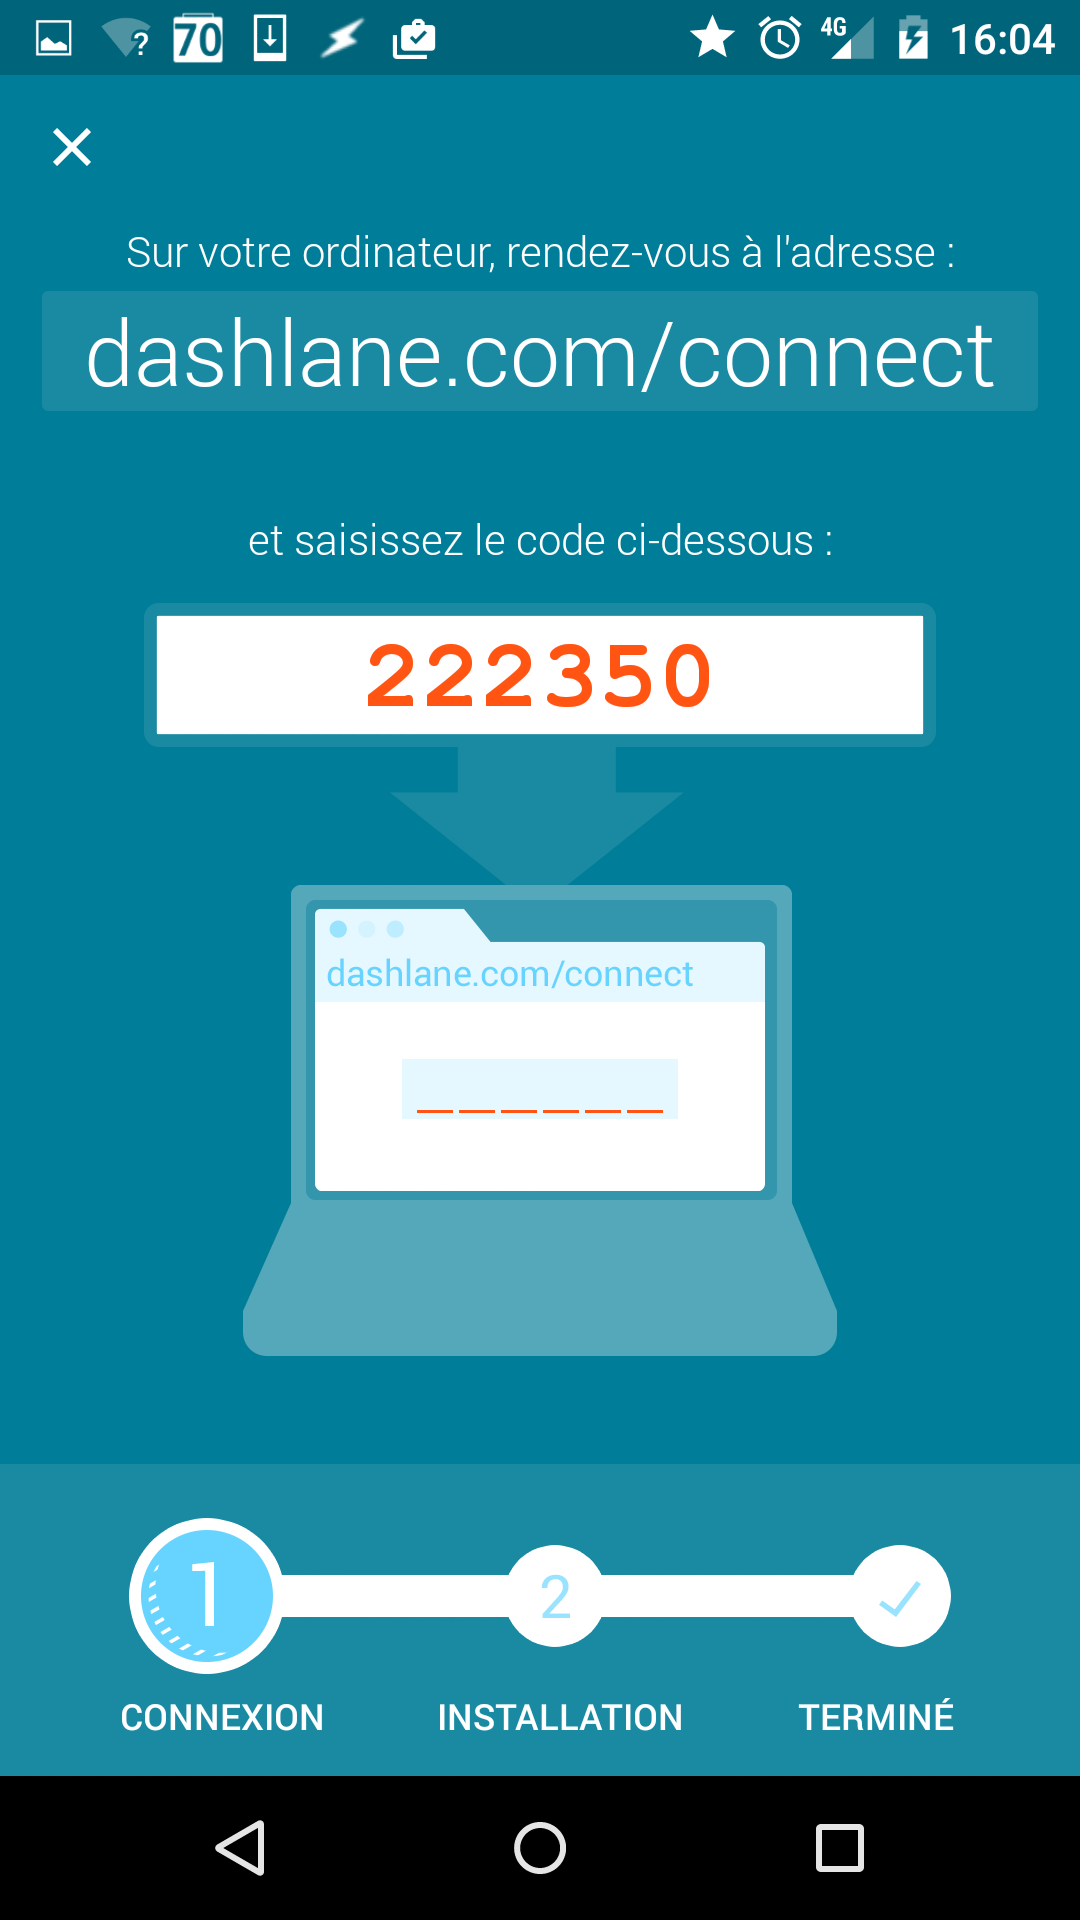 dashlane_connect_code